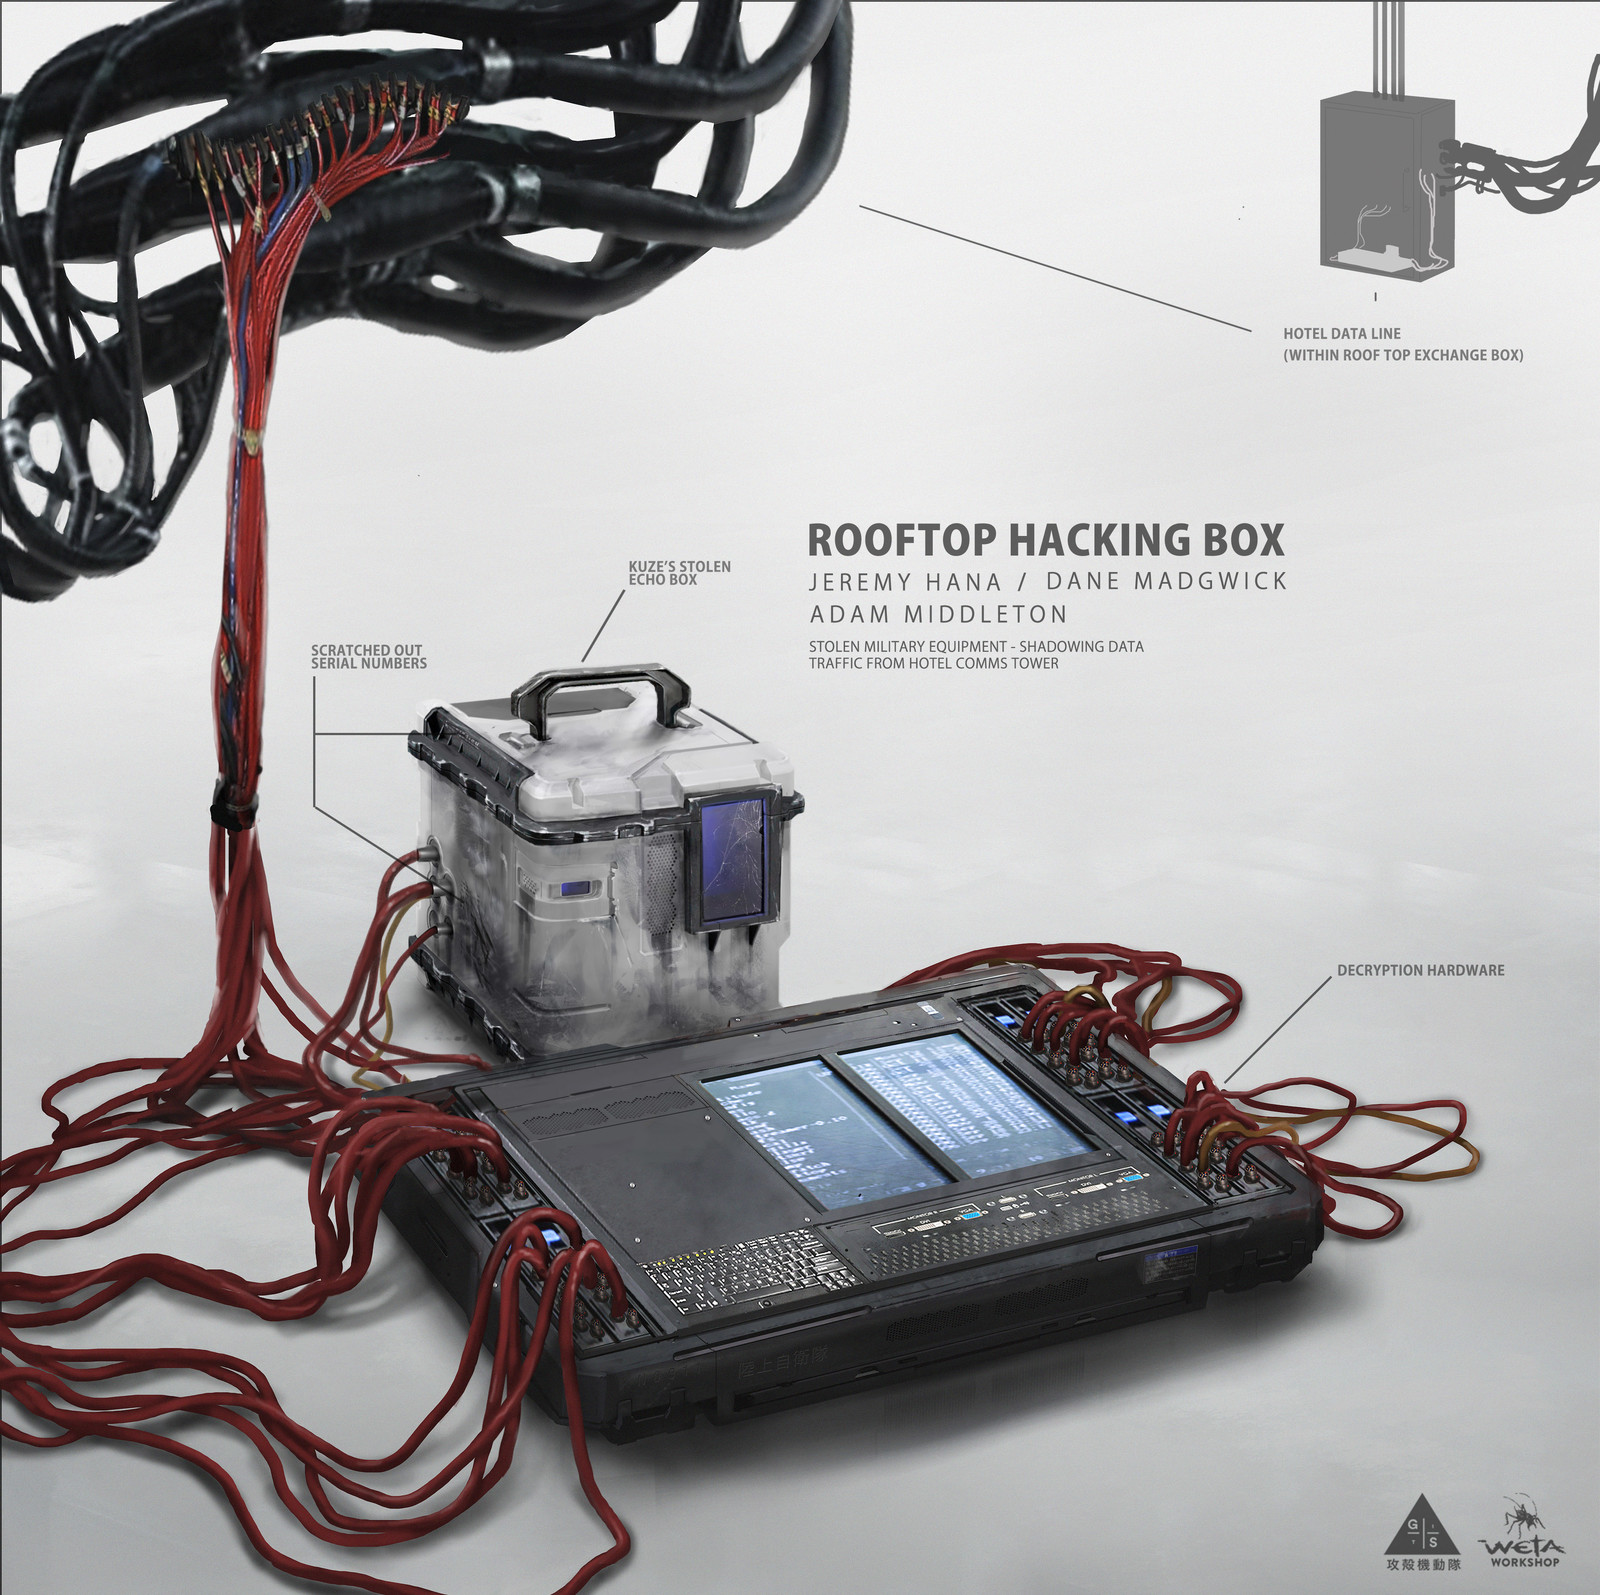 The Hacking Box was designed by Jeremy Hanna and Dane Madgwick - I just threw my Echo Box design in and added some extra cables - can never have enough cables.